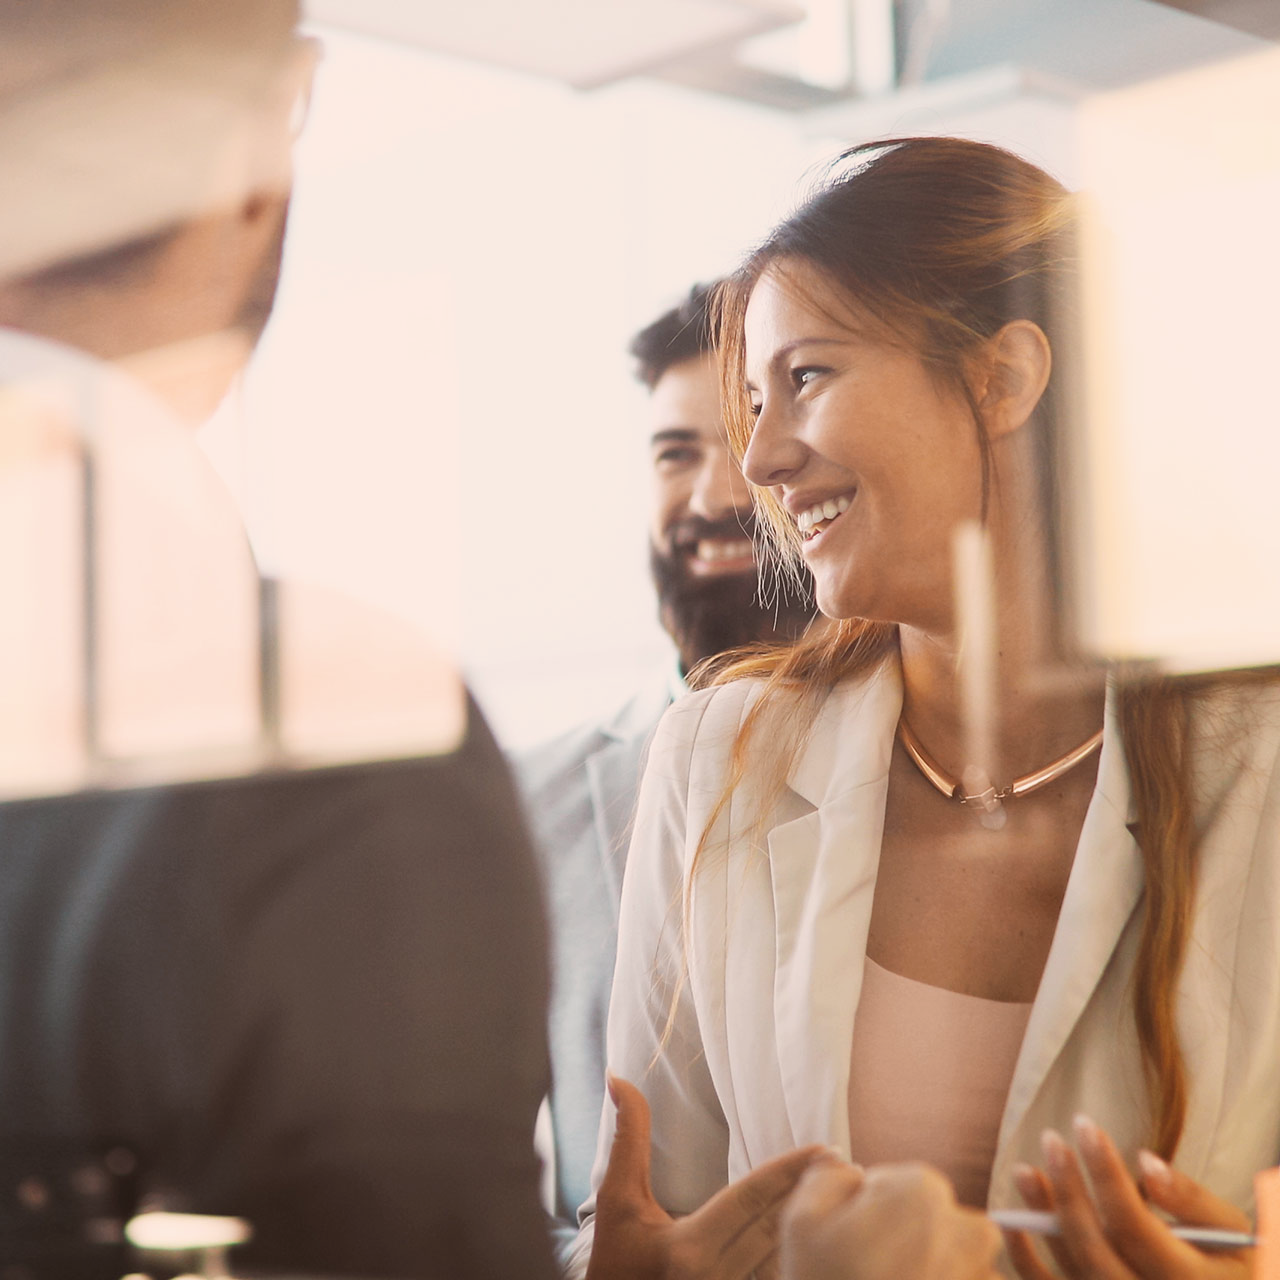 We know that when people relate well with their colleagues, they're happier and more productive. When a workplace is cohesive, everyone pulls together to achieve even greater outcomes.